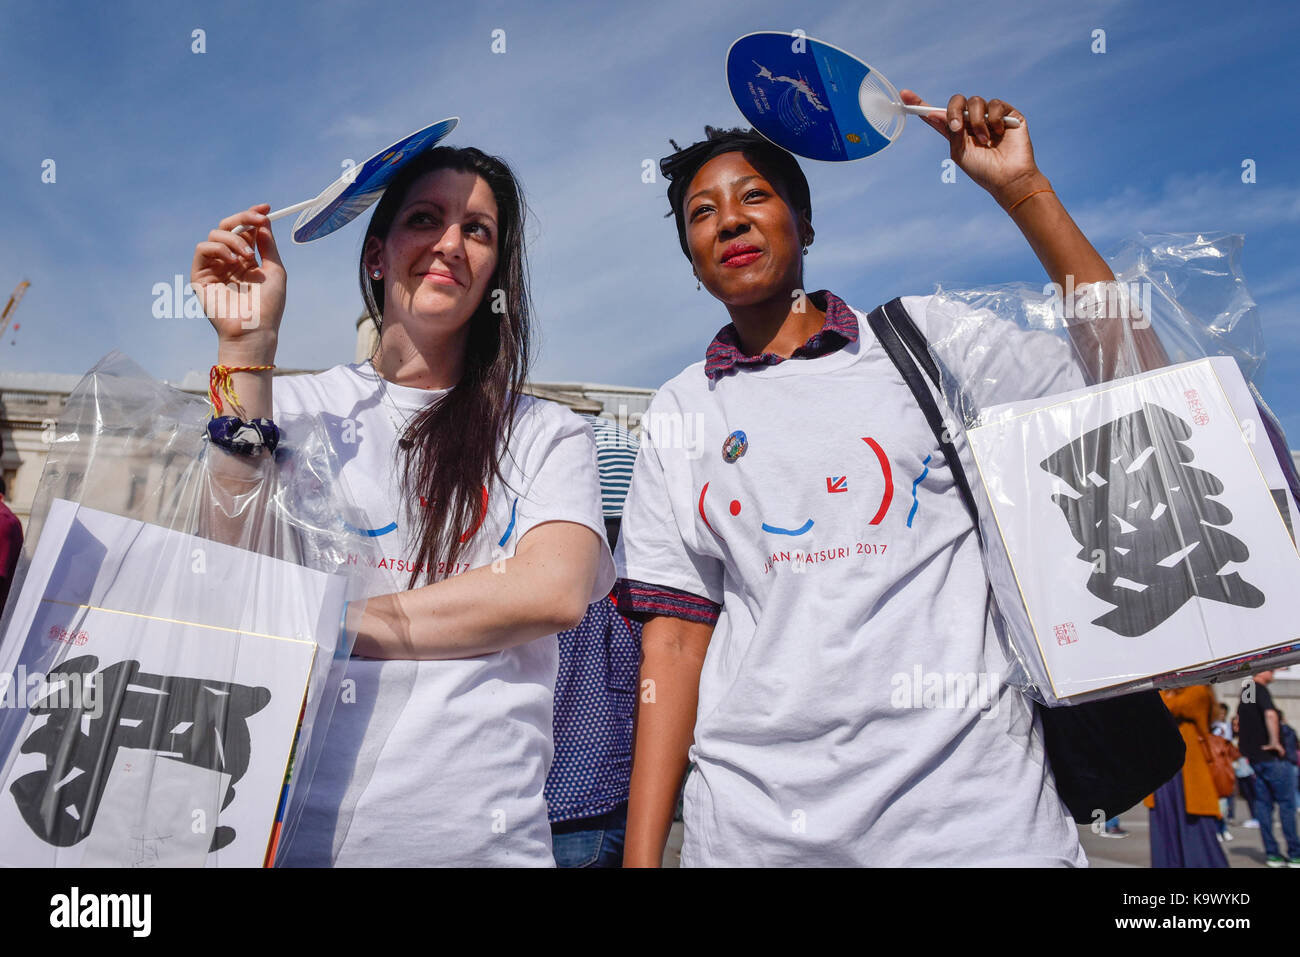 London, UK.  24 September 2017.  Volunteers at the 9th annual Japan Matsuri taking place in Trafalgar Square, bringing Stock Photo